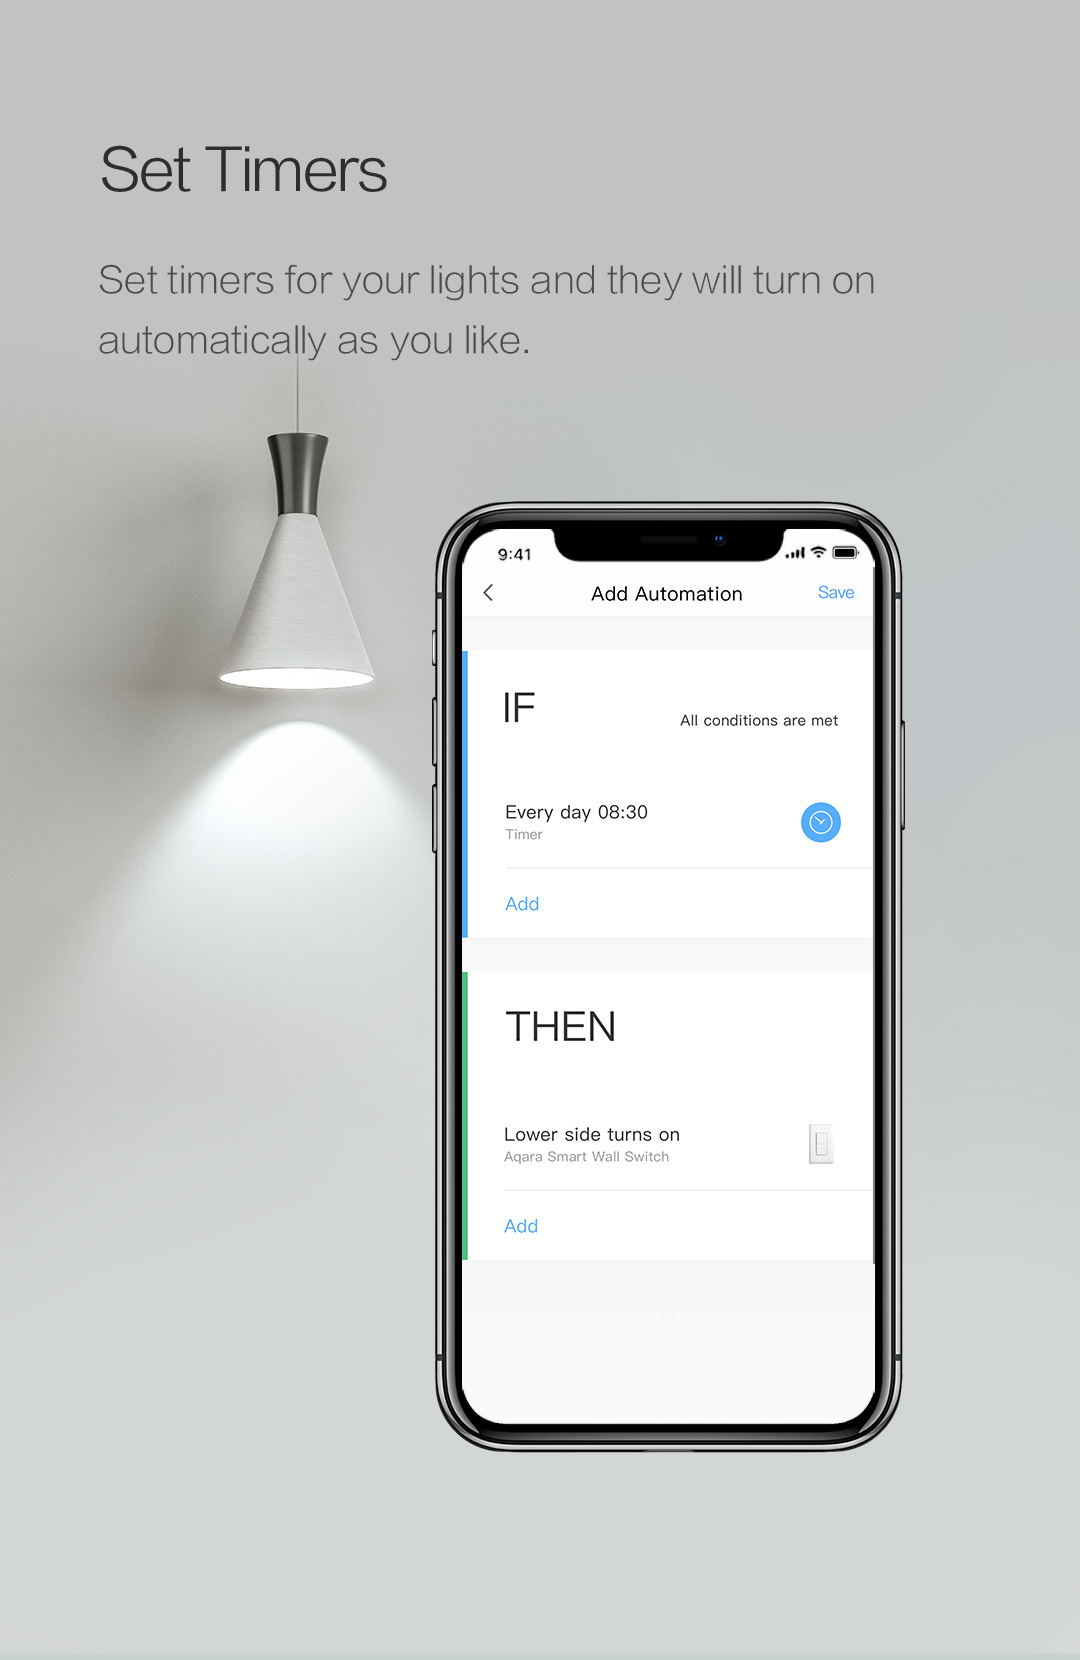 Set timers for our home automation switch to turn on/off automatically lights